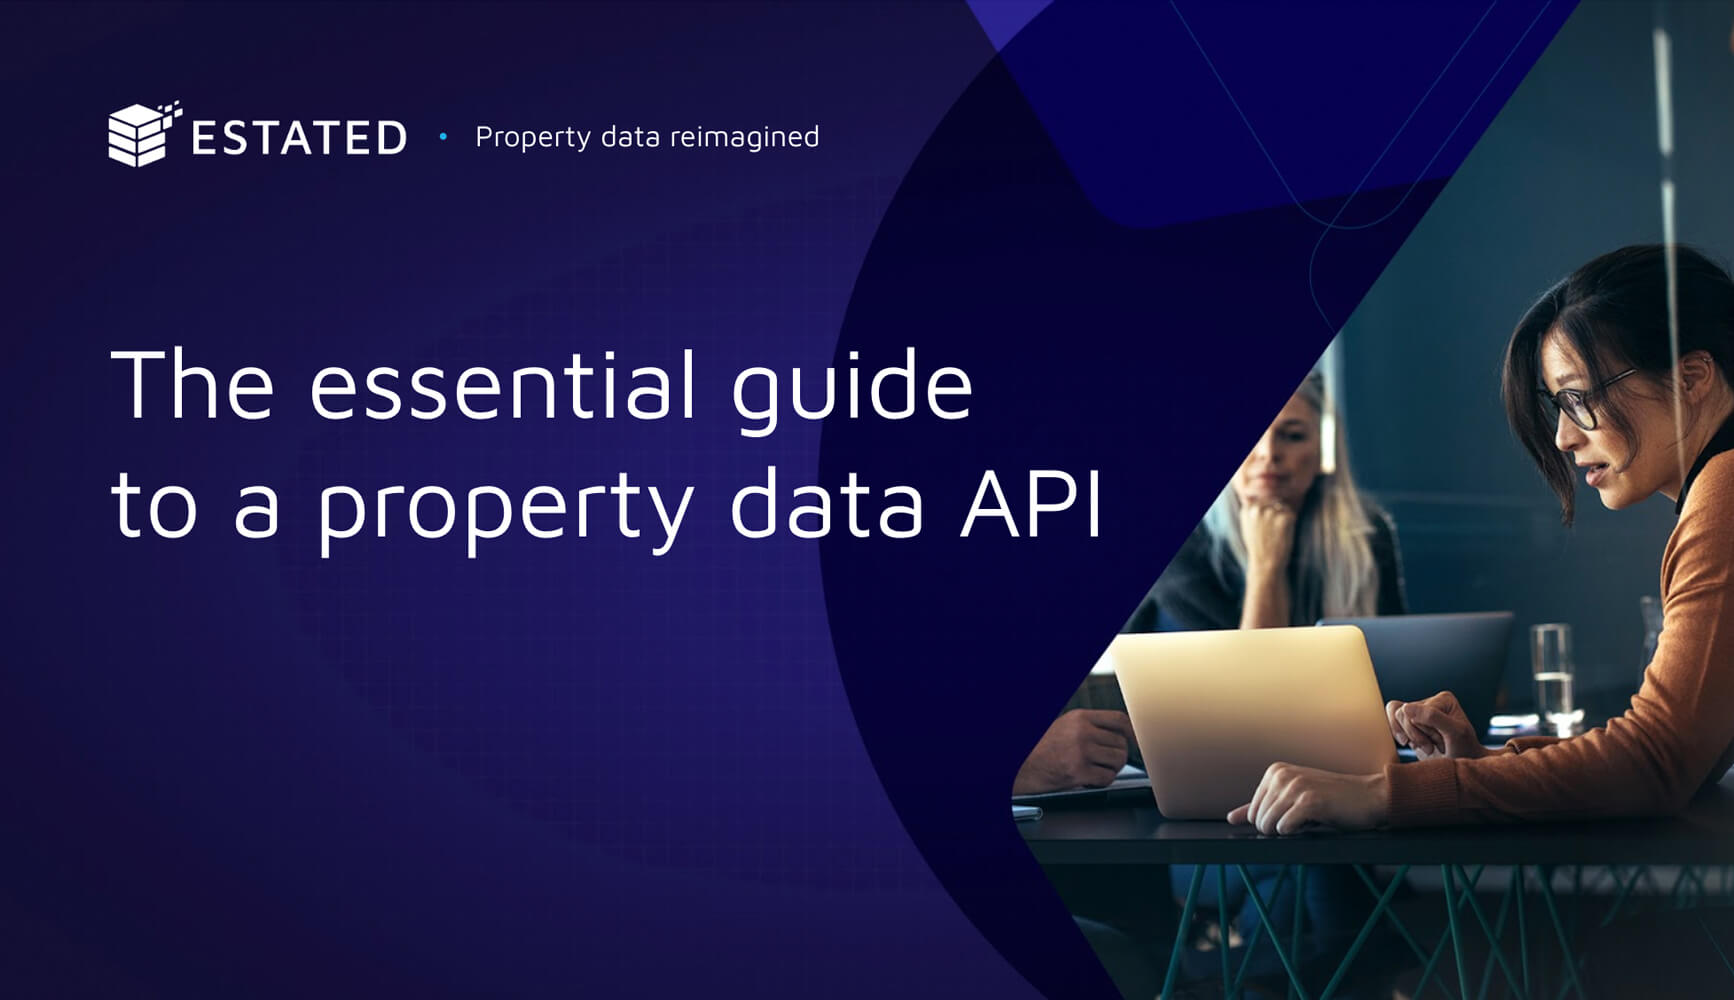 The essential guide to a property data API